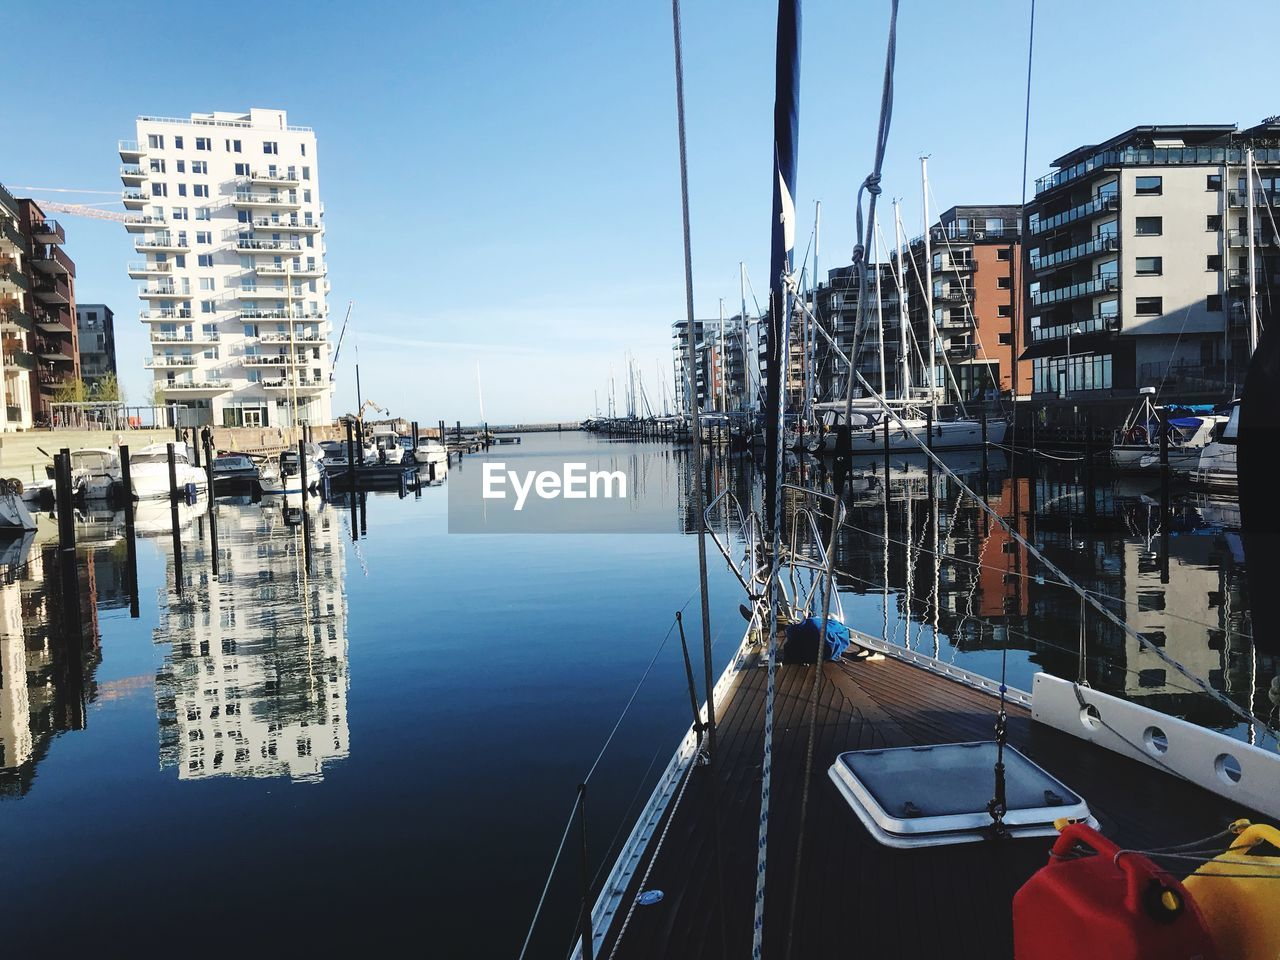 Sailboats Moored At Harbor Against Buildings In City